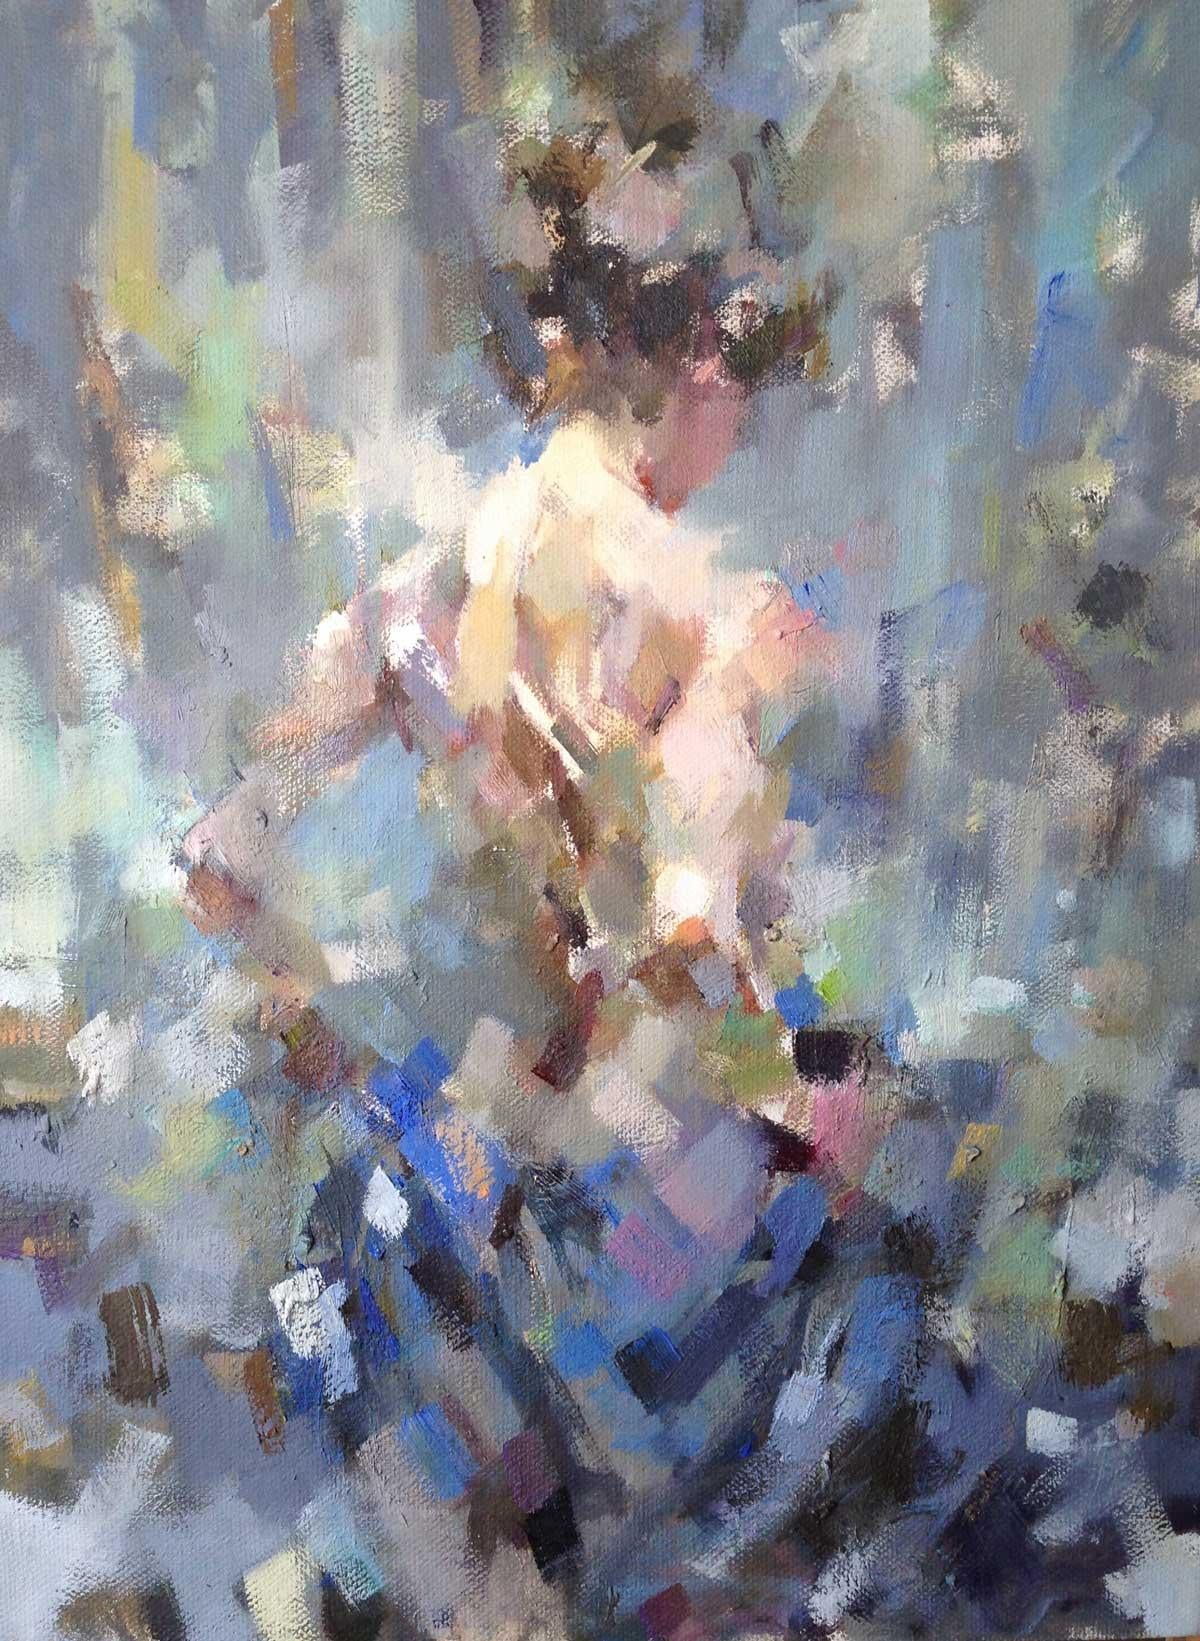 Ada with the Blue Cloth - Figurative Nude Painting: Oil on Canvas